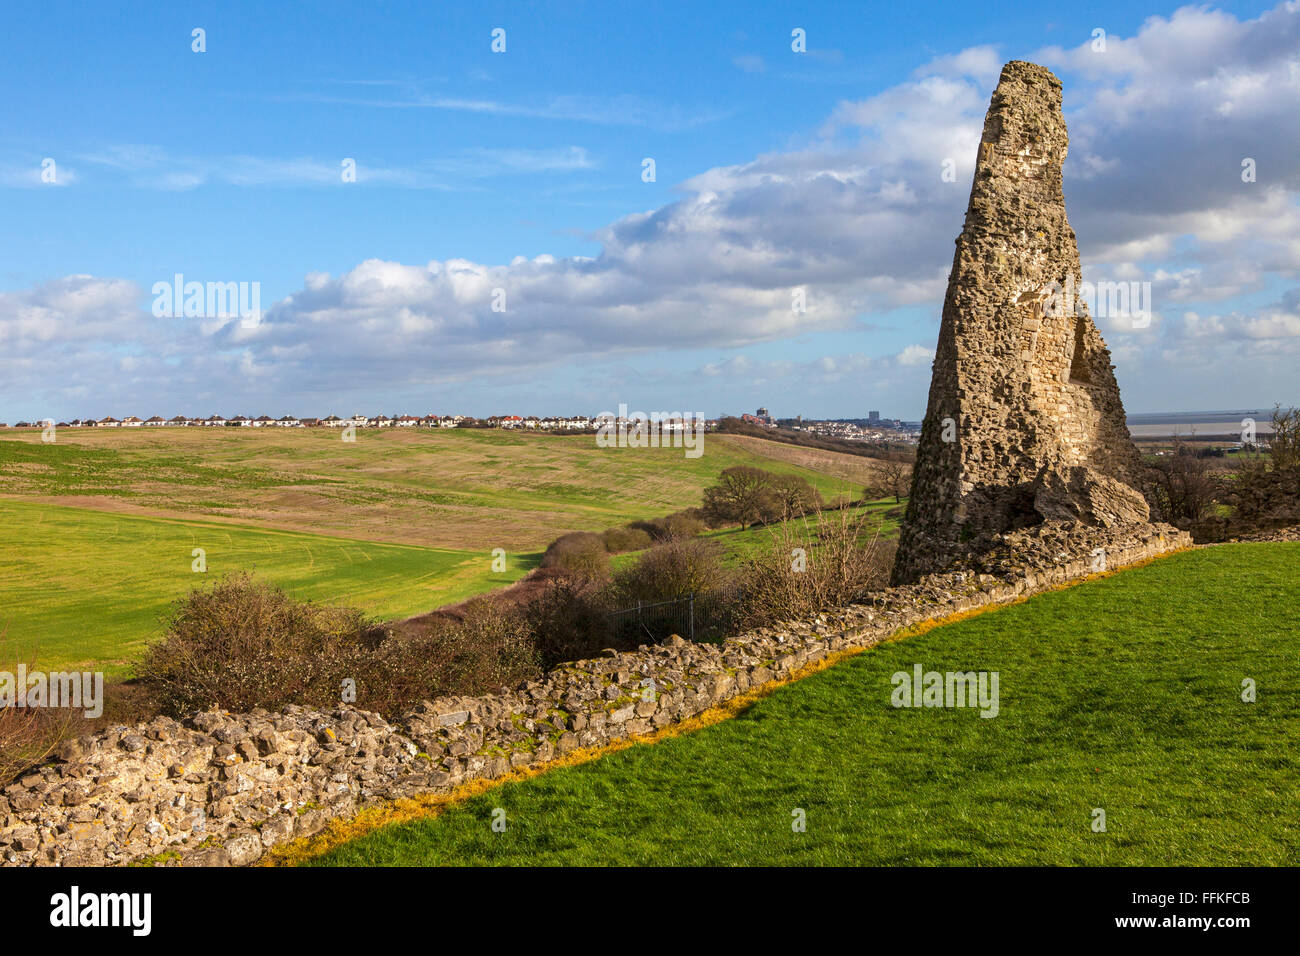 Remains of the historic Hadleigh Castle in Essex, England. - Stock Image